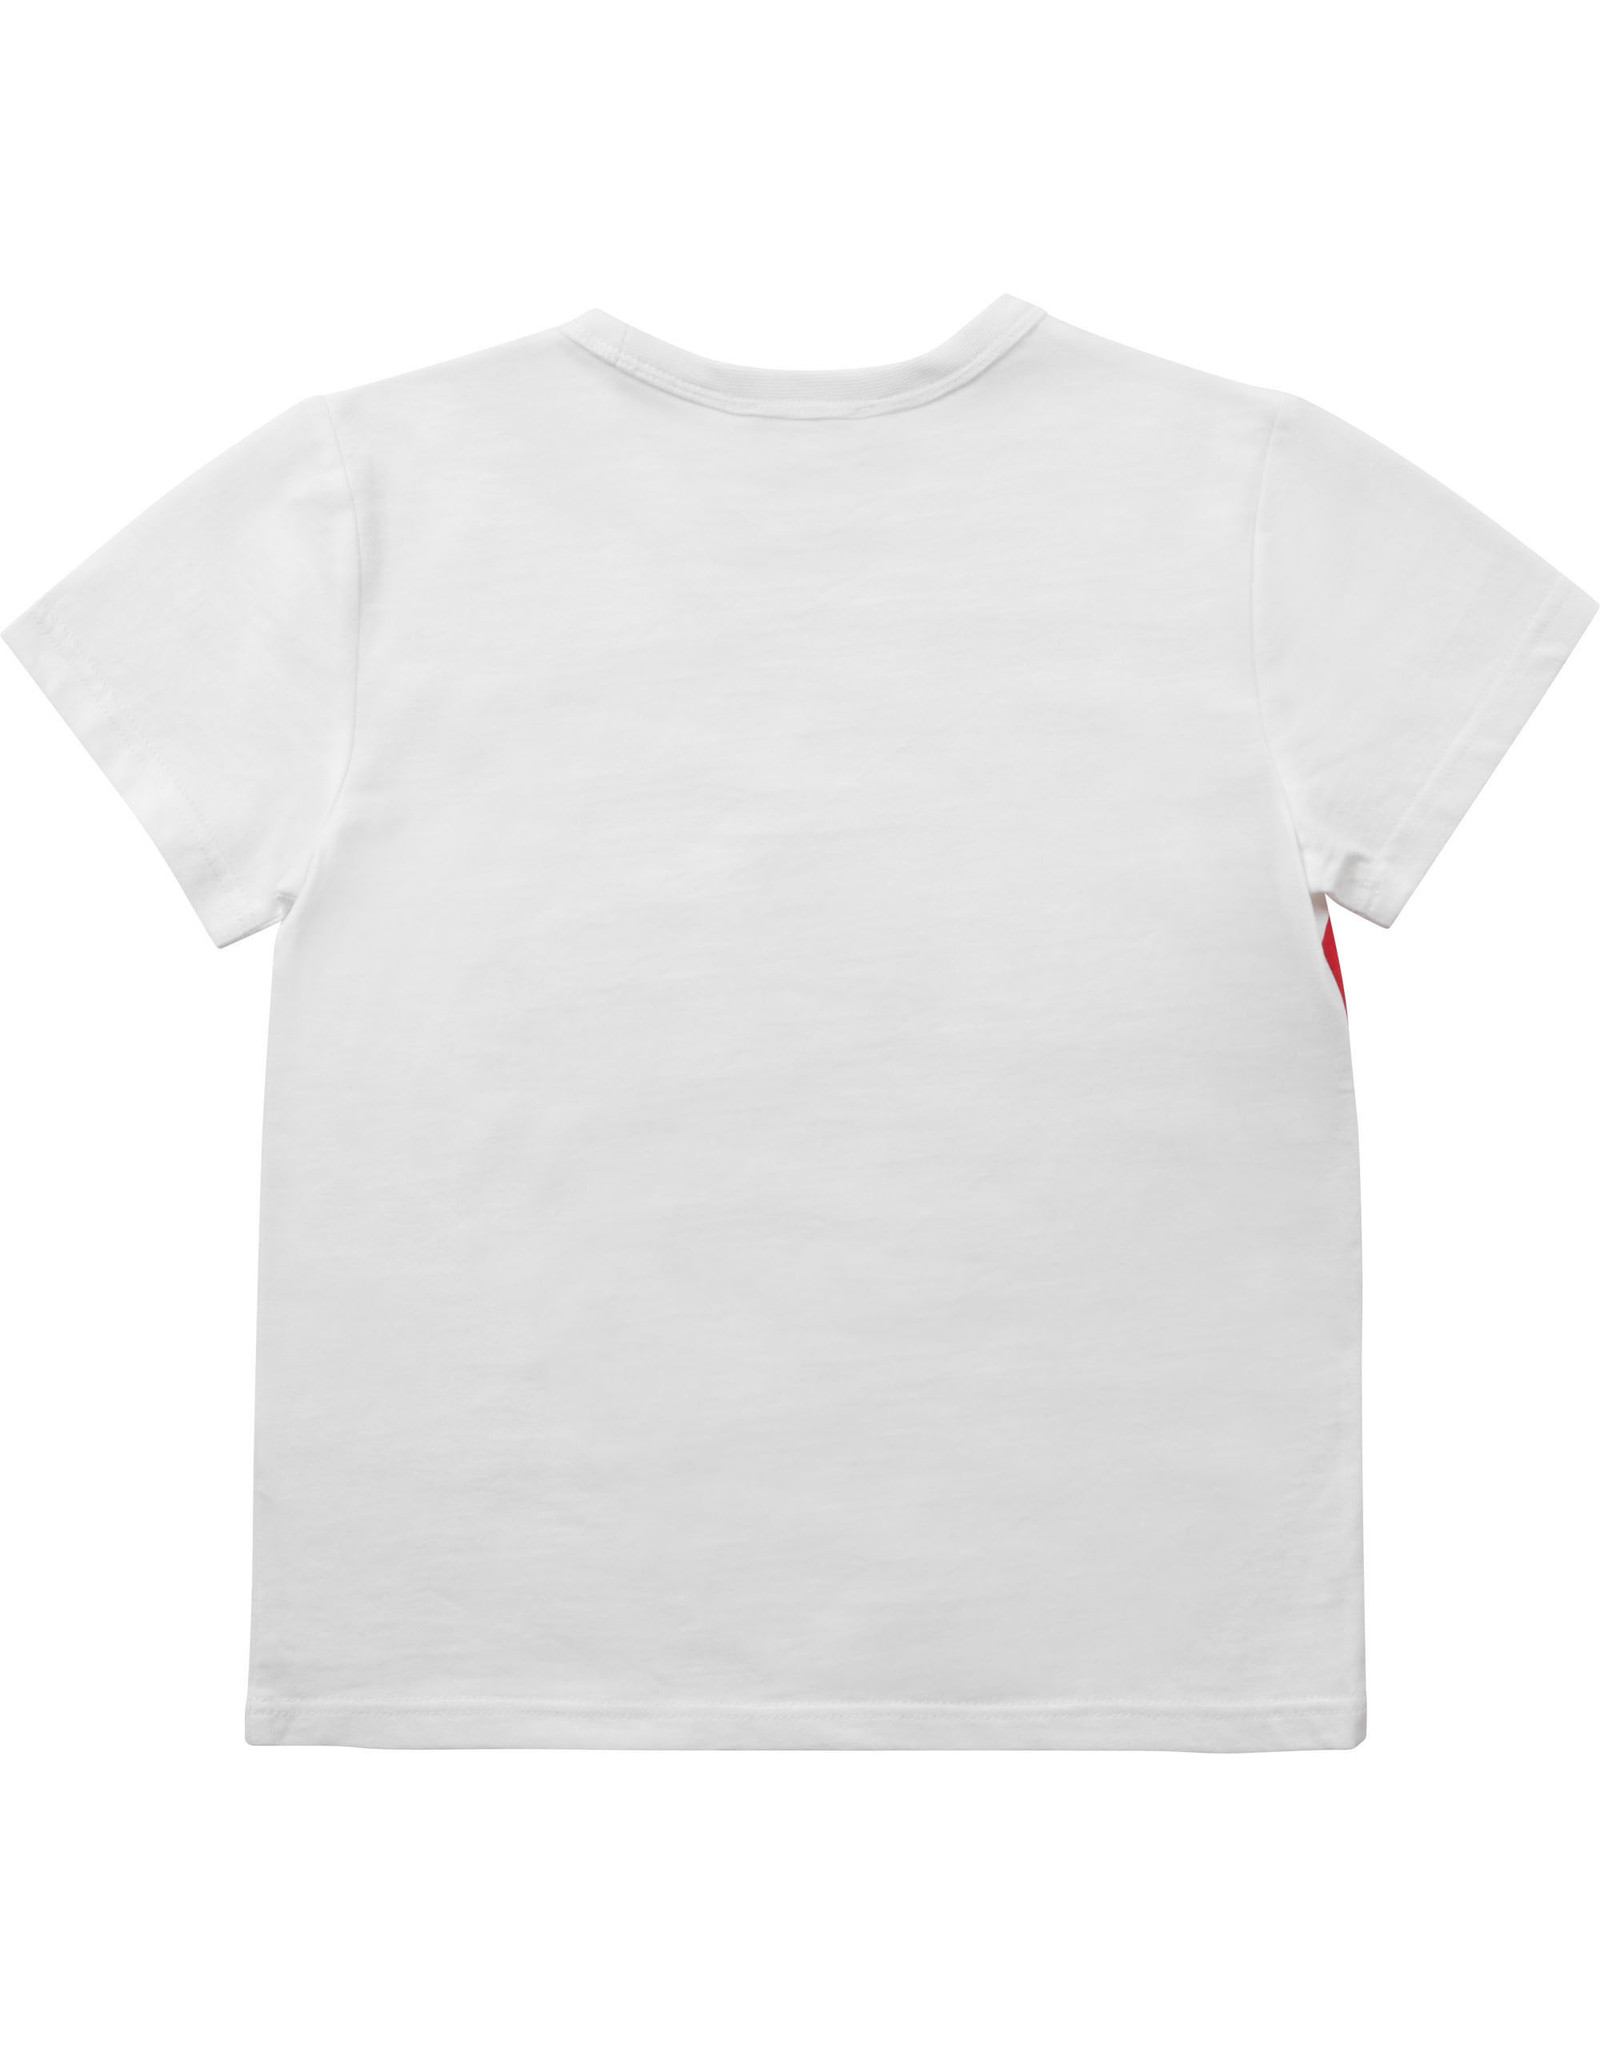 The Marc Jacobs TMJ SS21 W15543 T-shirt